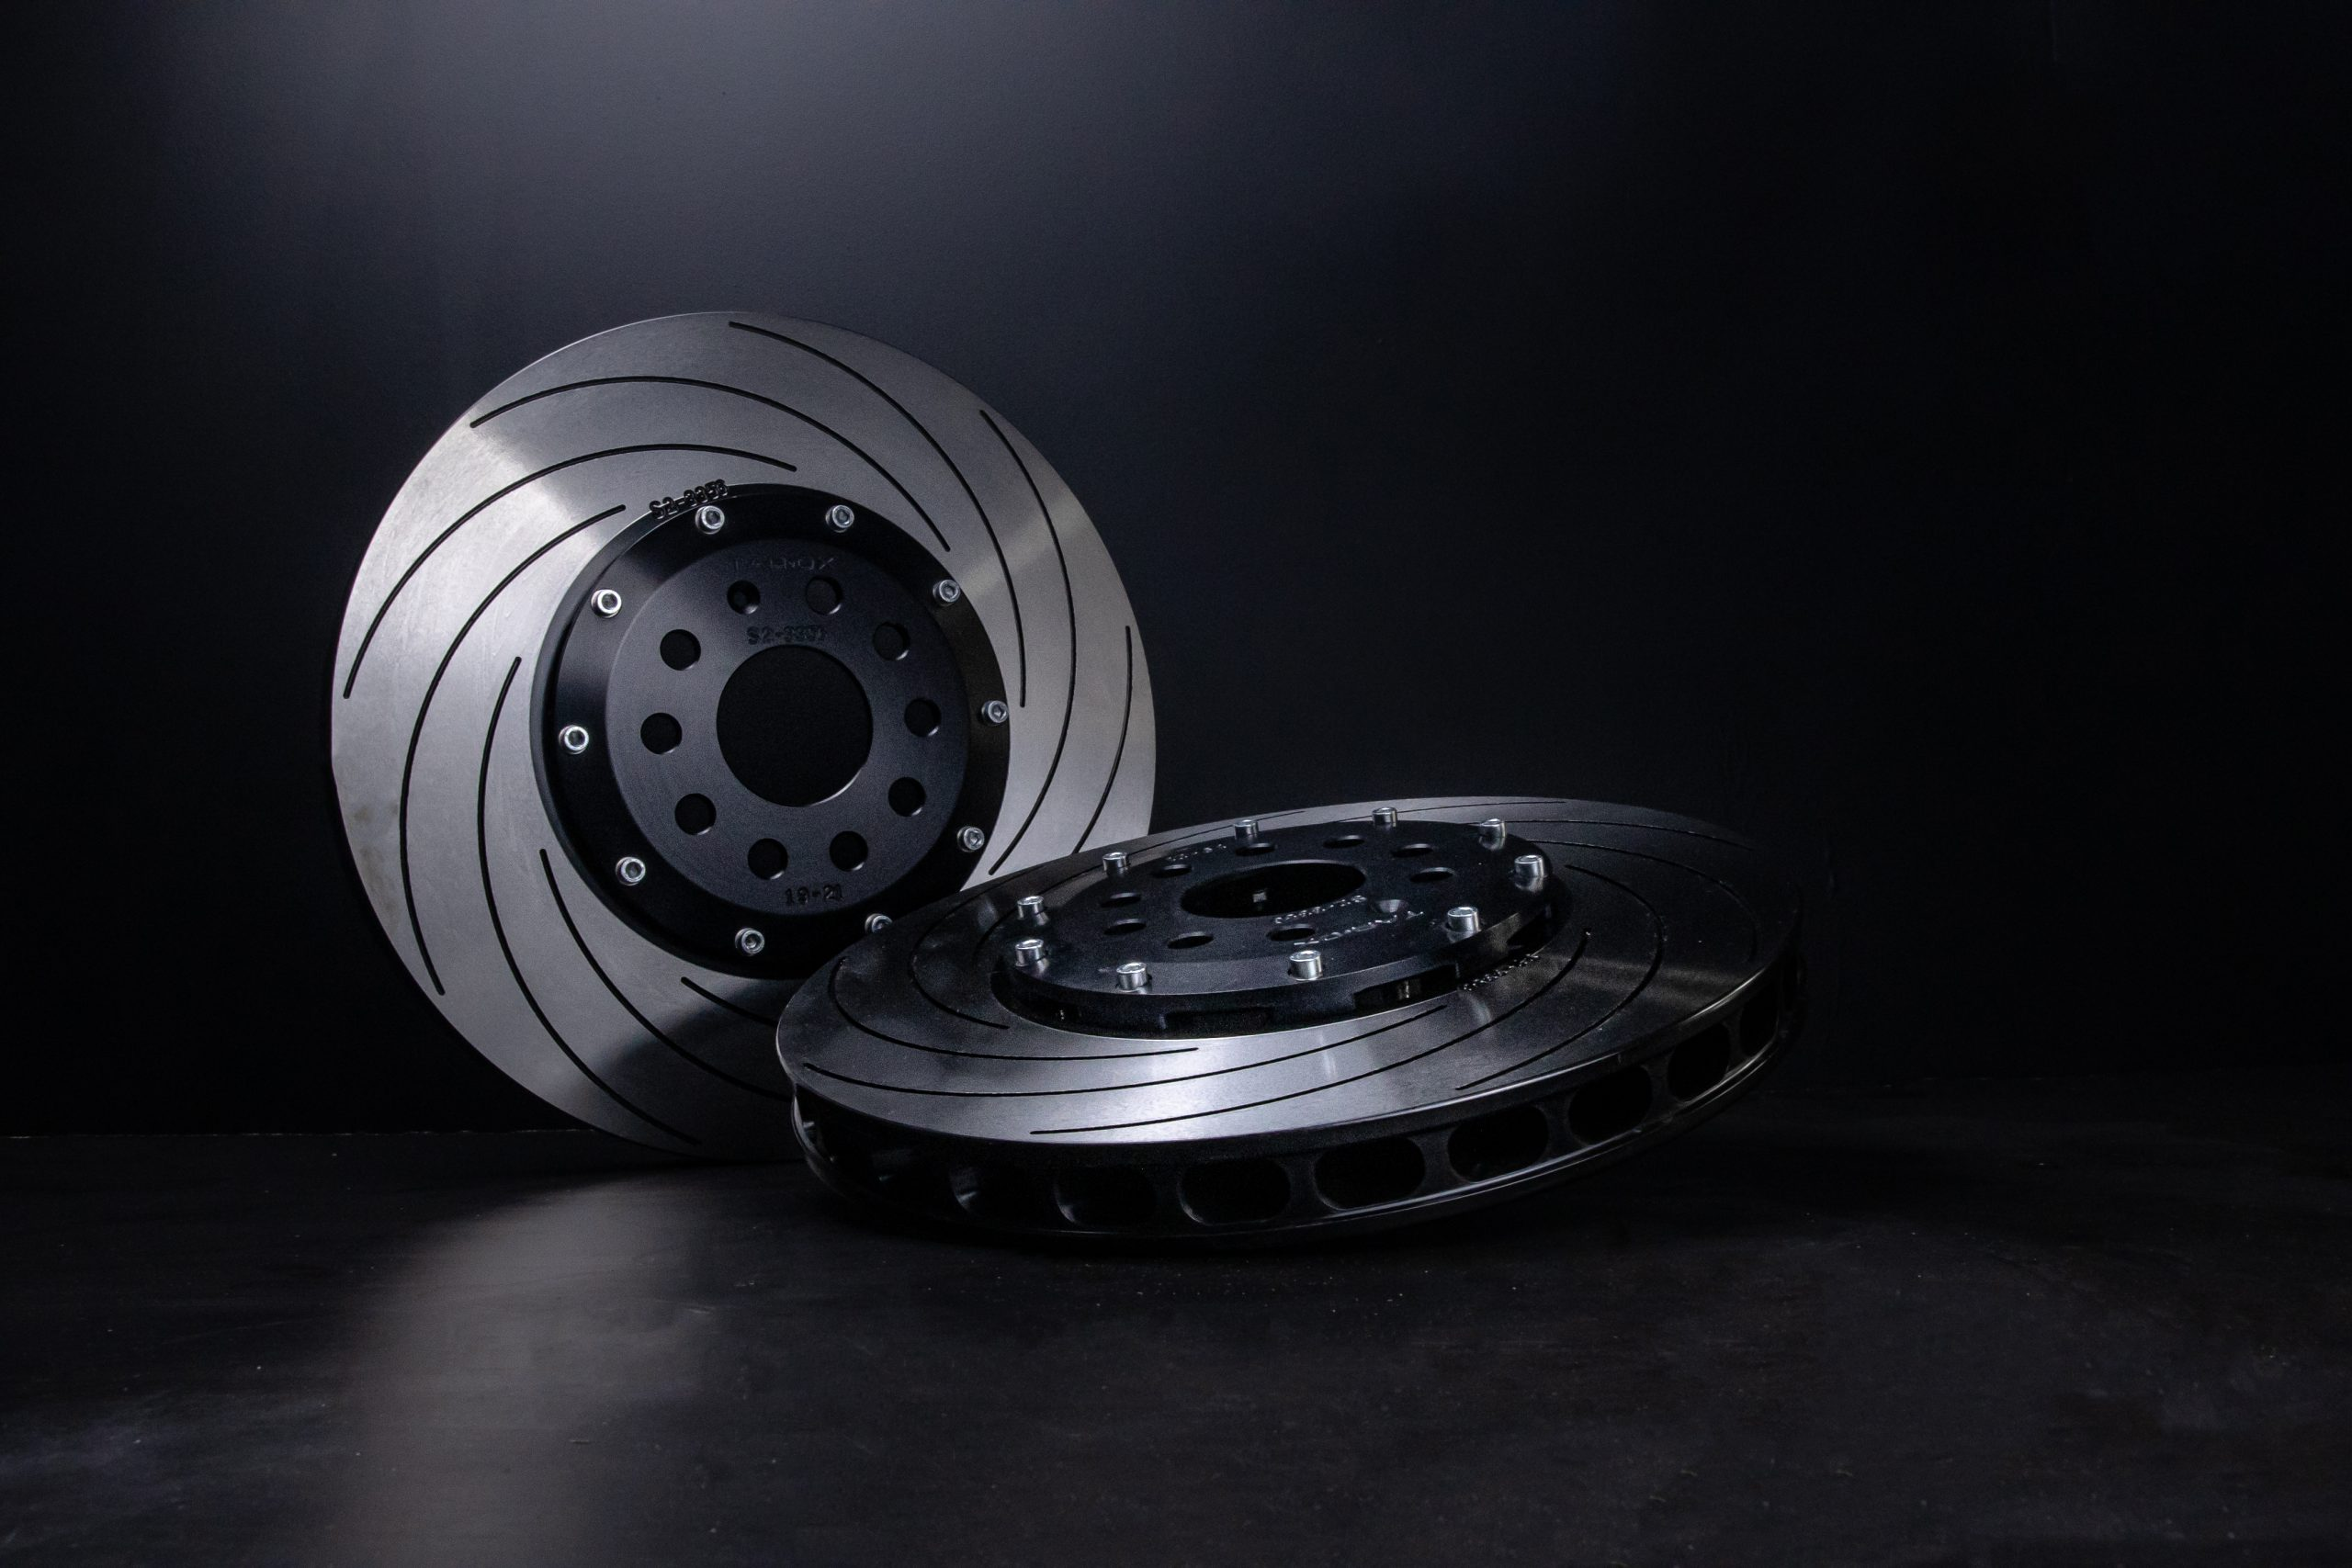 Golf Mk8 R/Clubsport – floating front disc upgrade